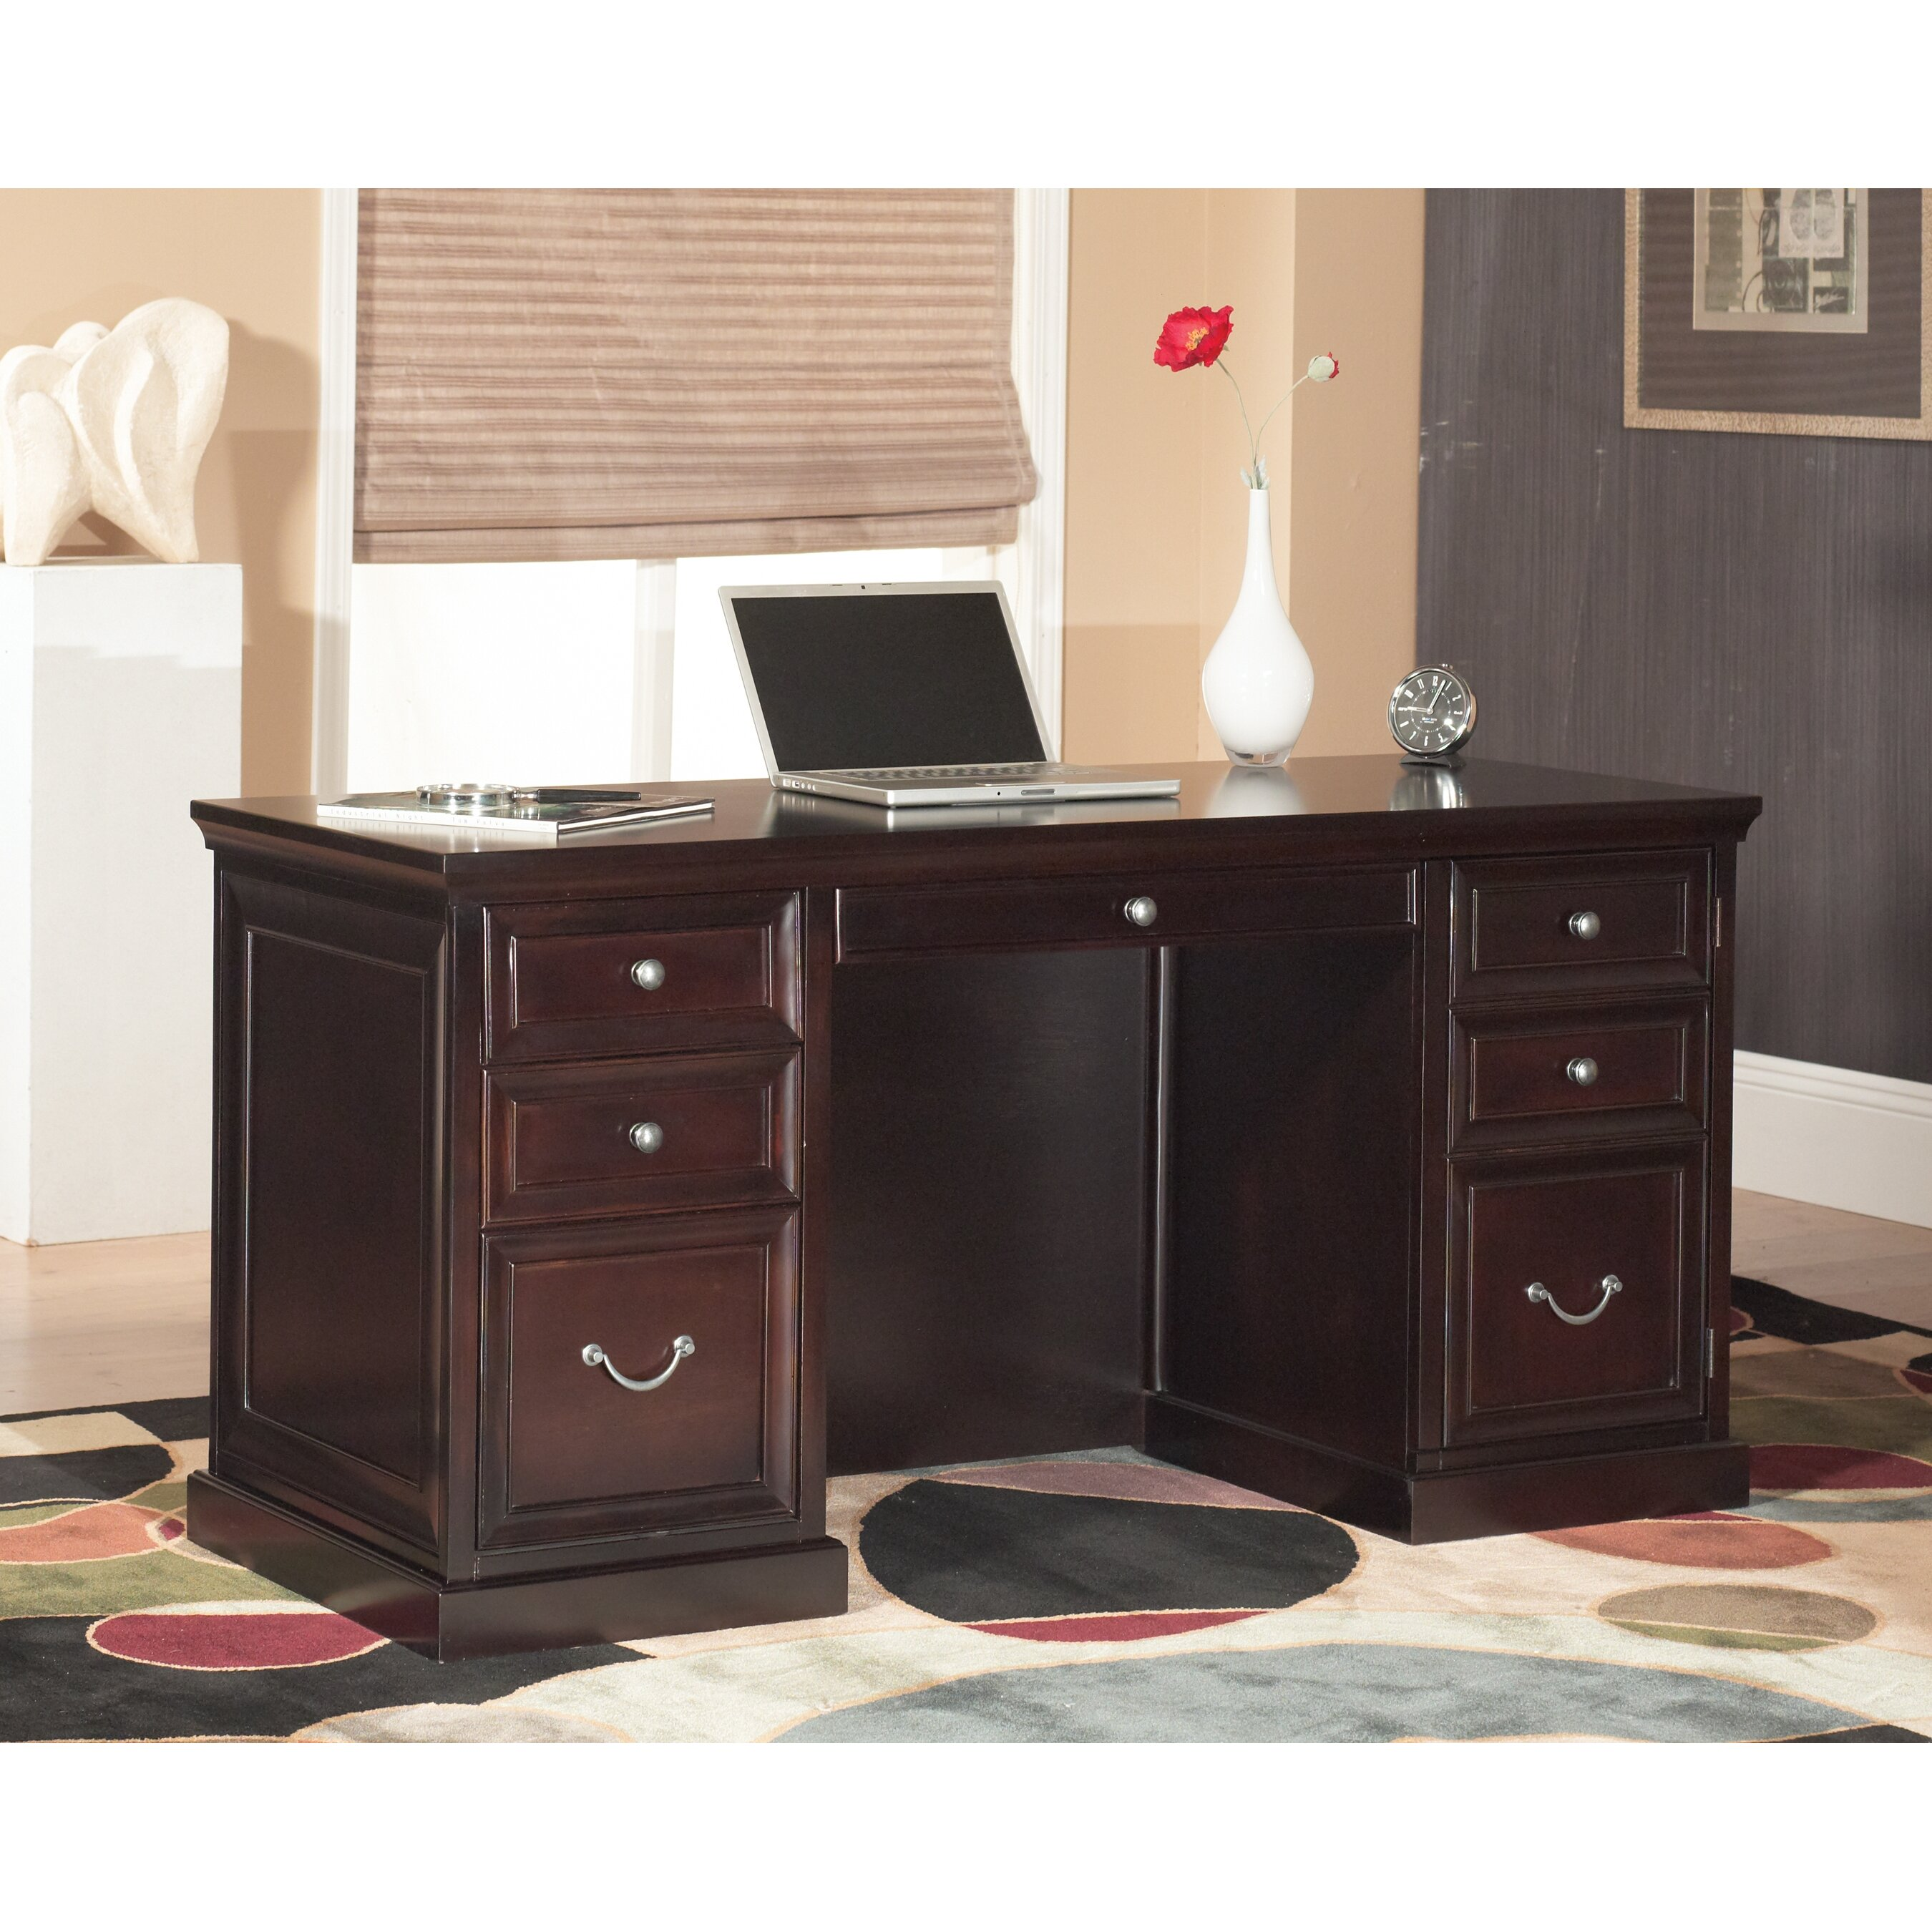 kathy ireland Home by Martin Furniture Fulton Double